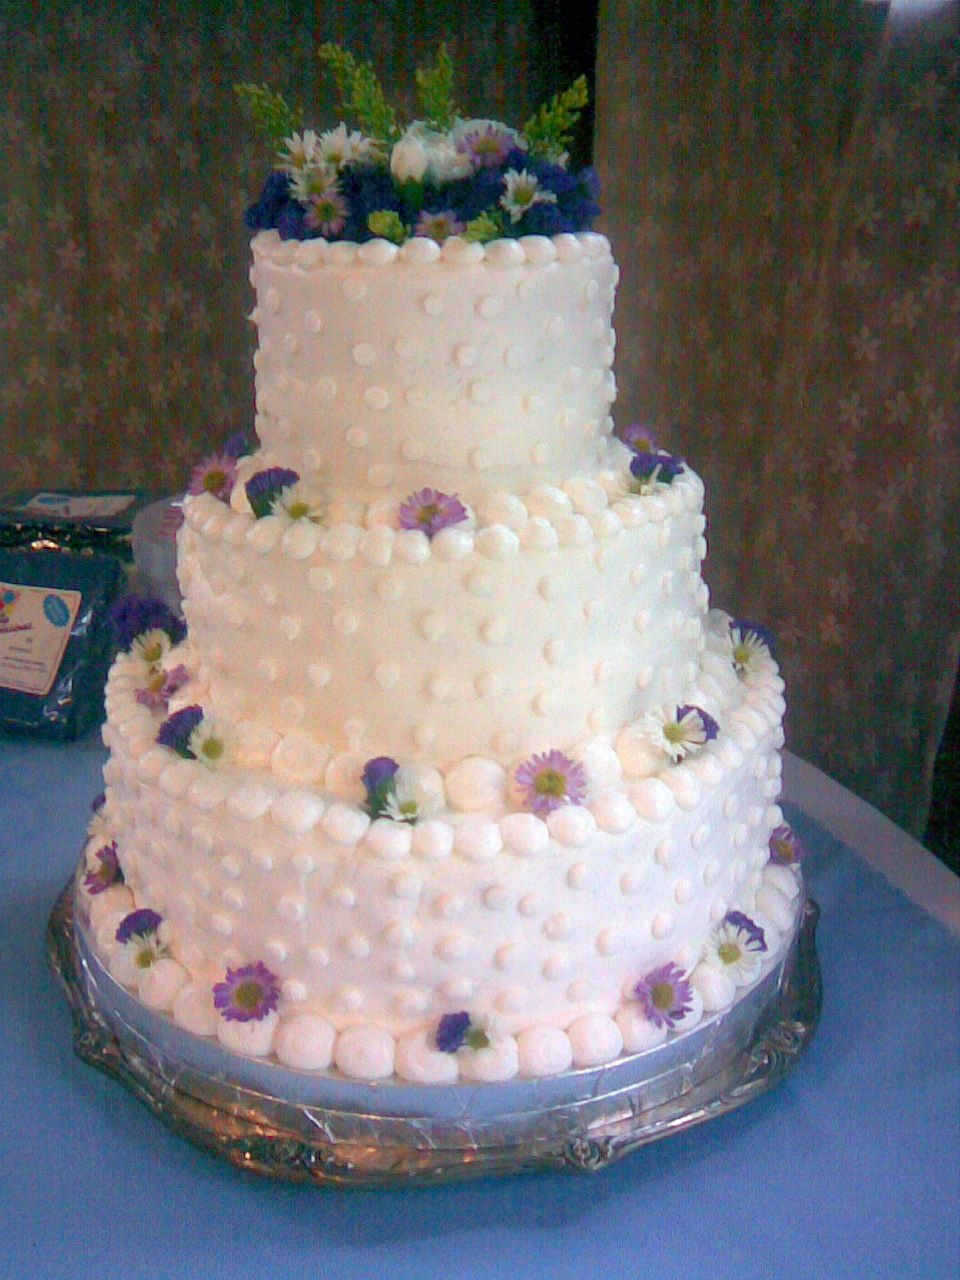 jen5021's photos in Round Wedding Cakes